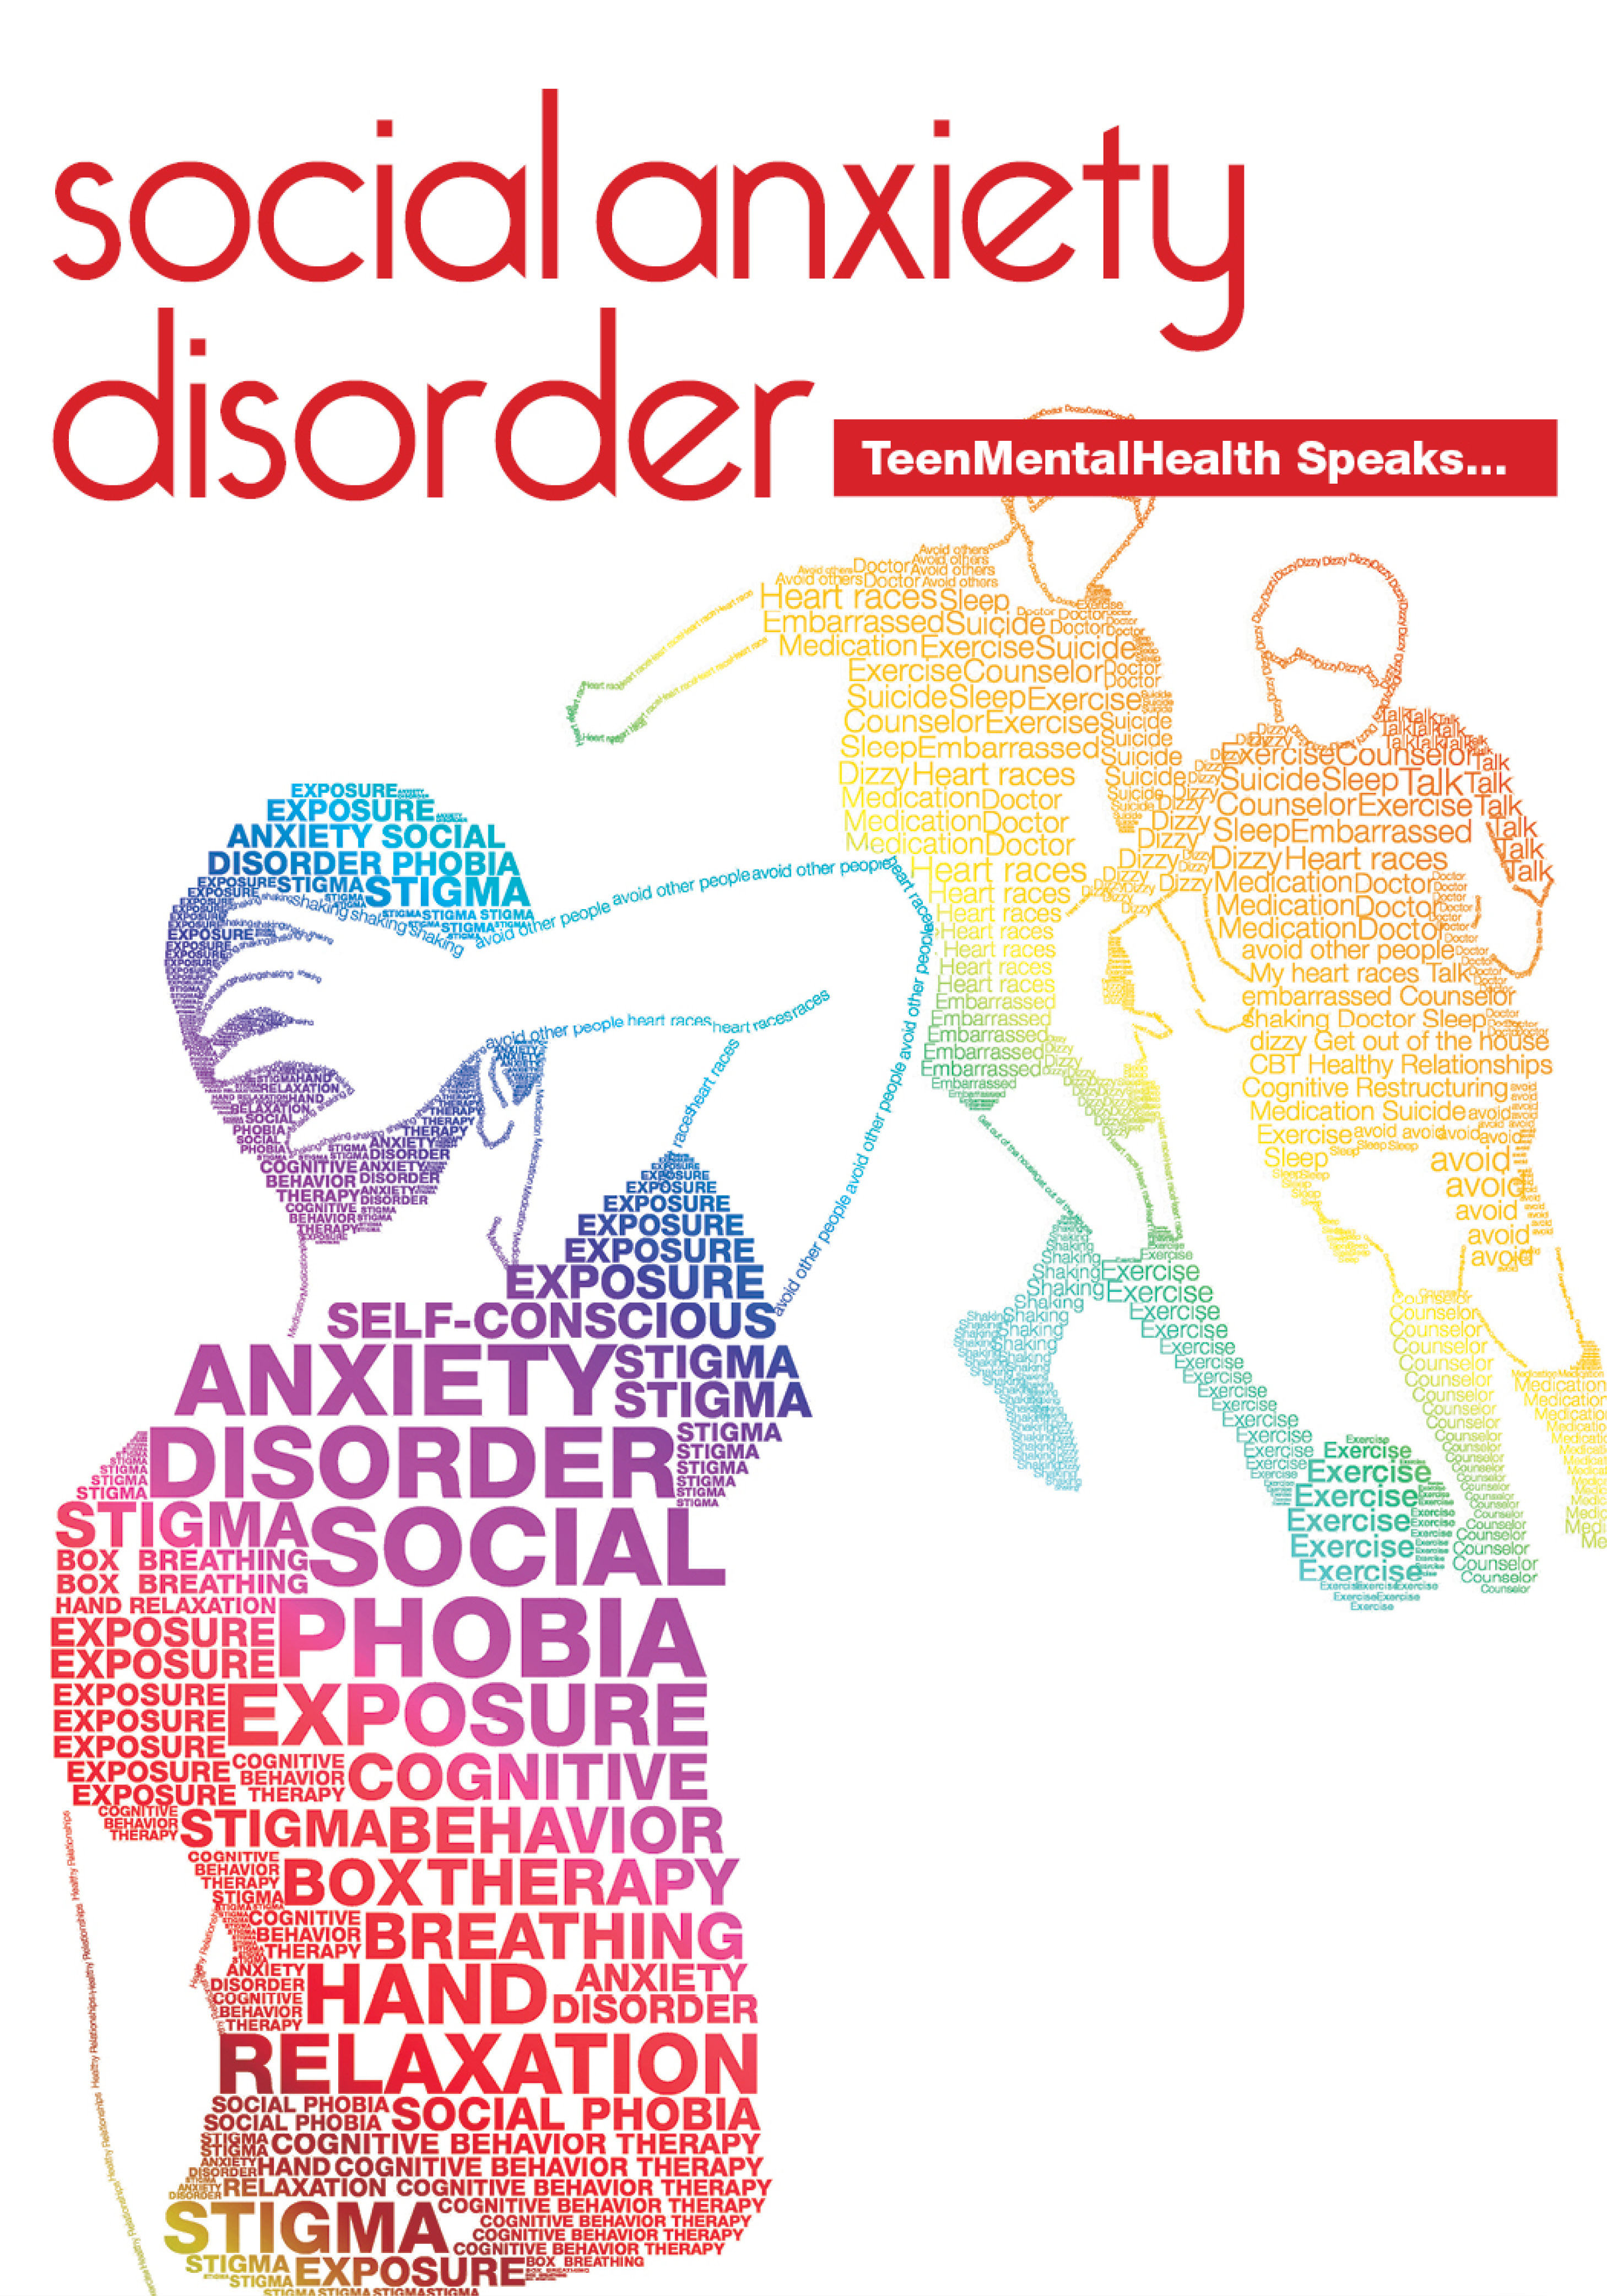 Social Anxiety Disorder-Topic Overview - WebMD